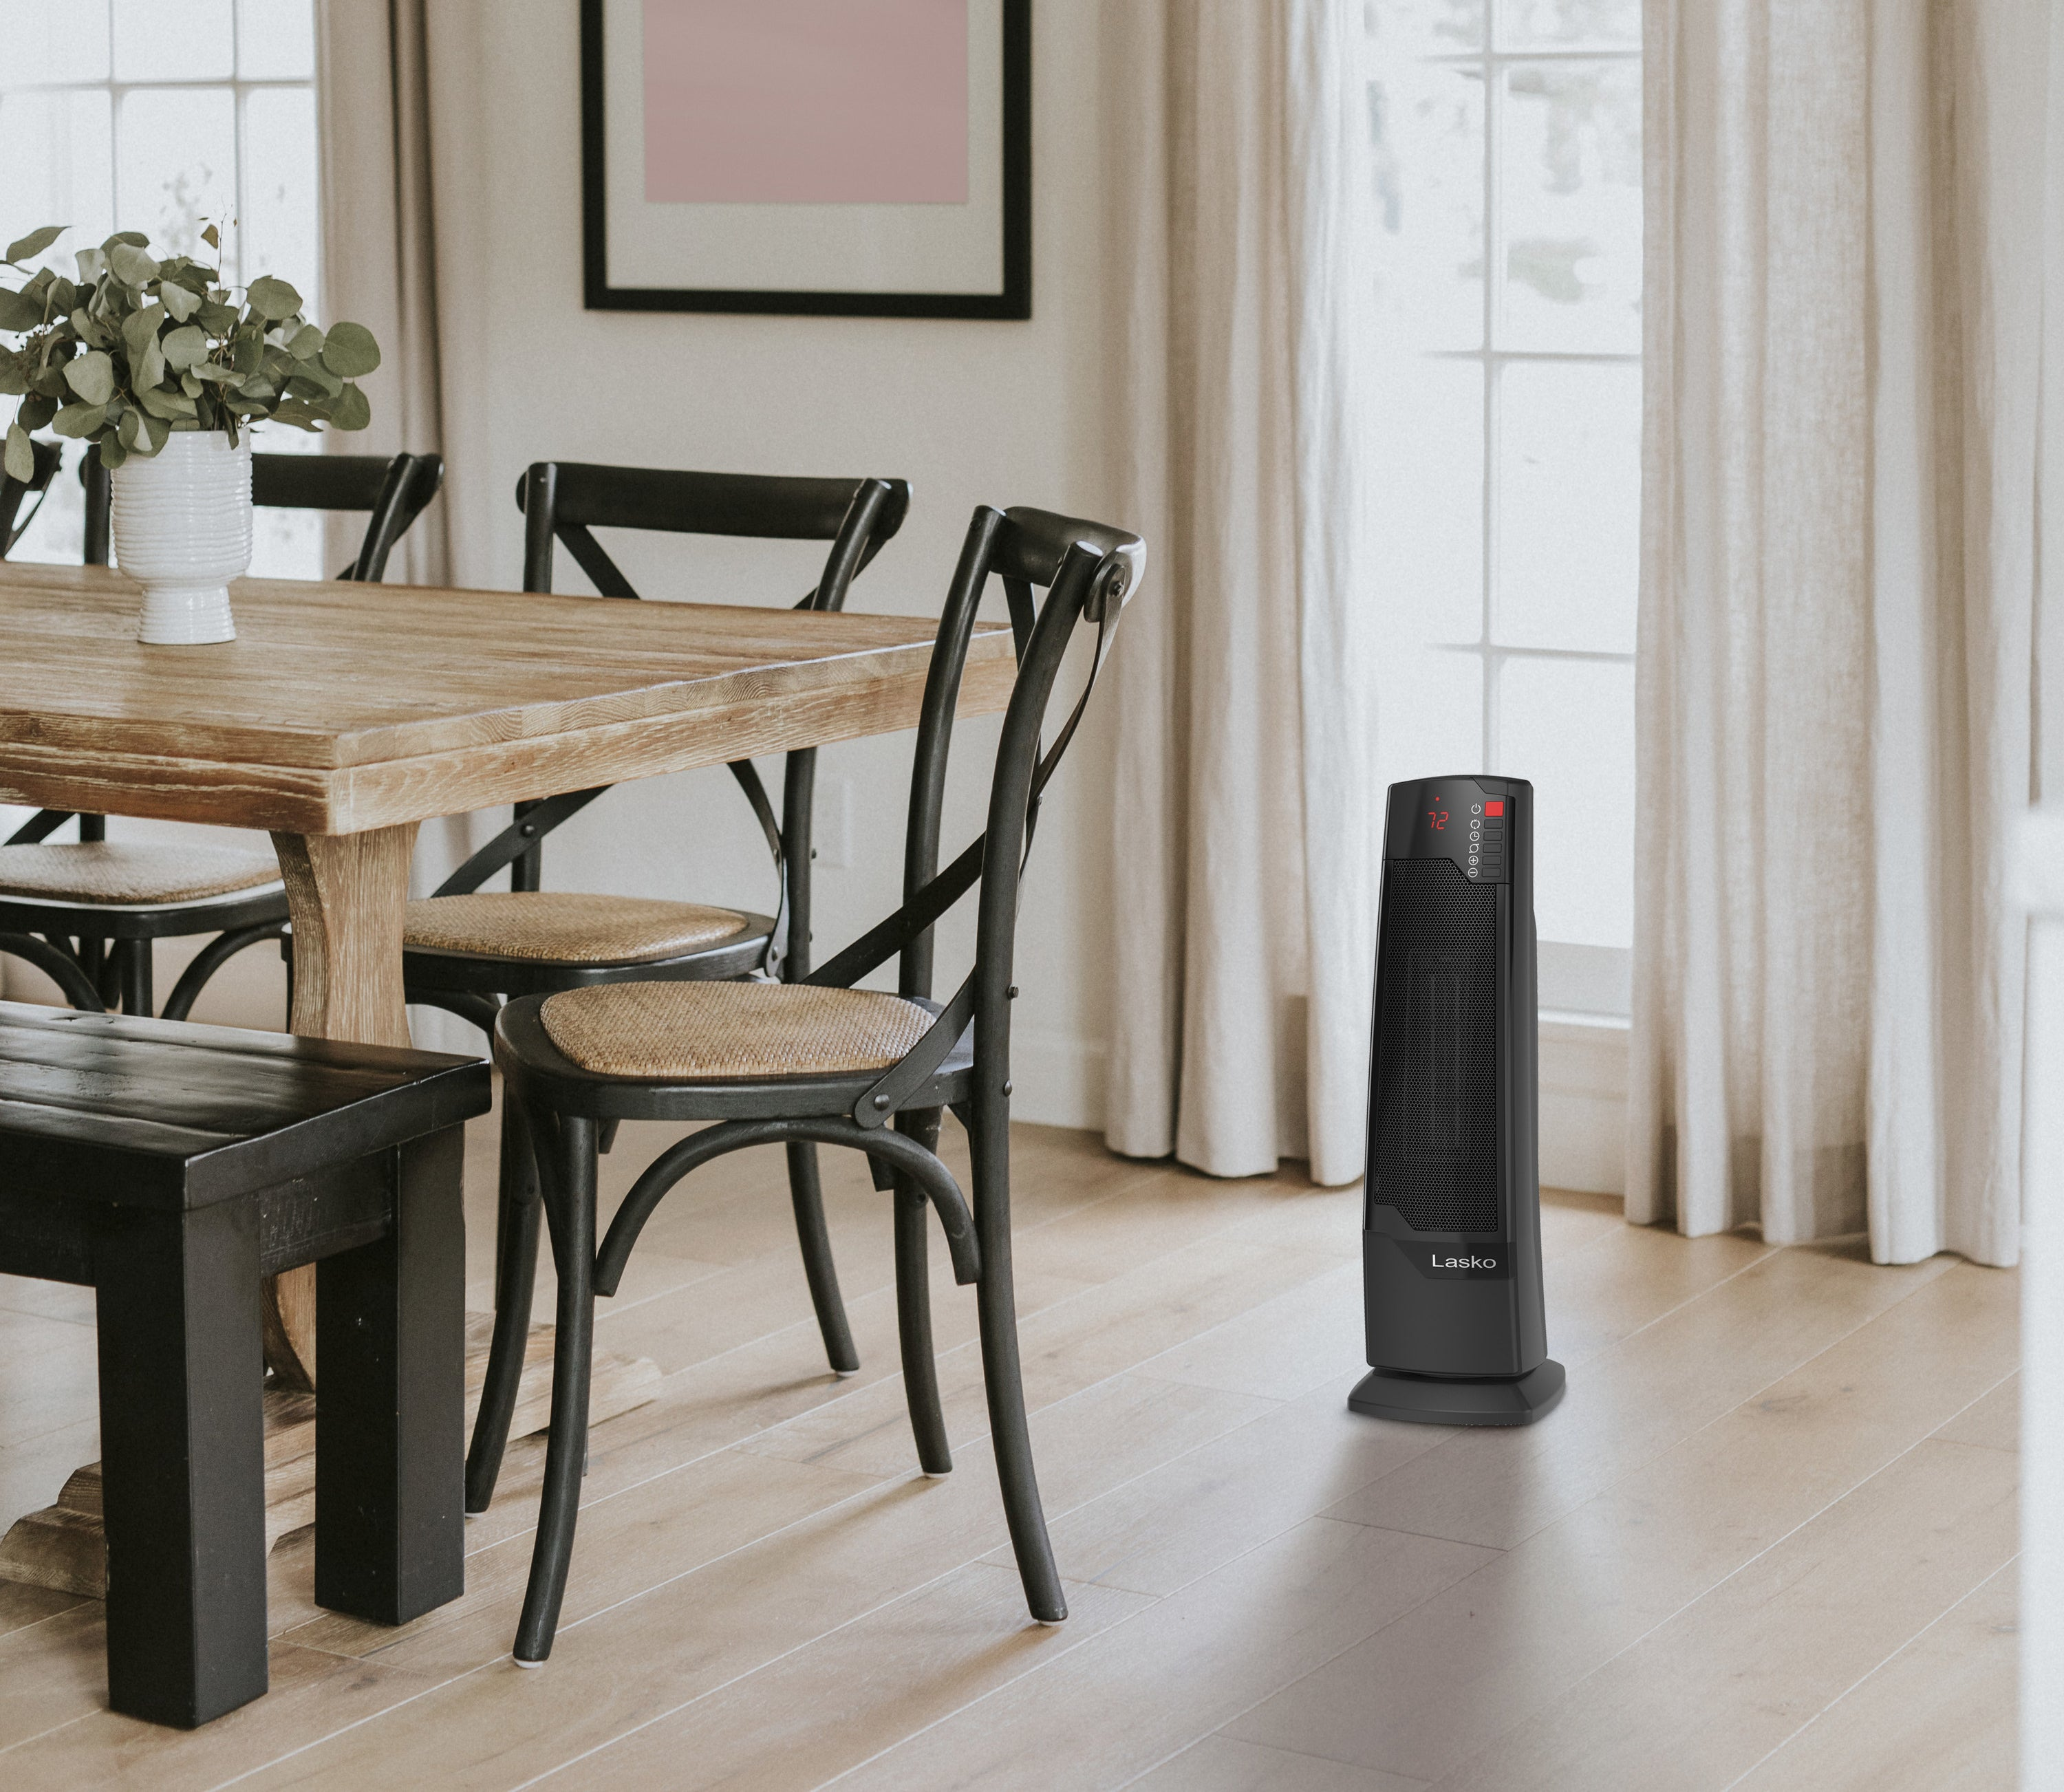 space heater on the floor next to a kitchen table